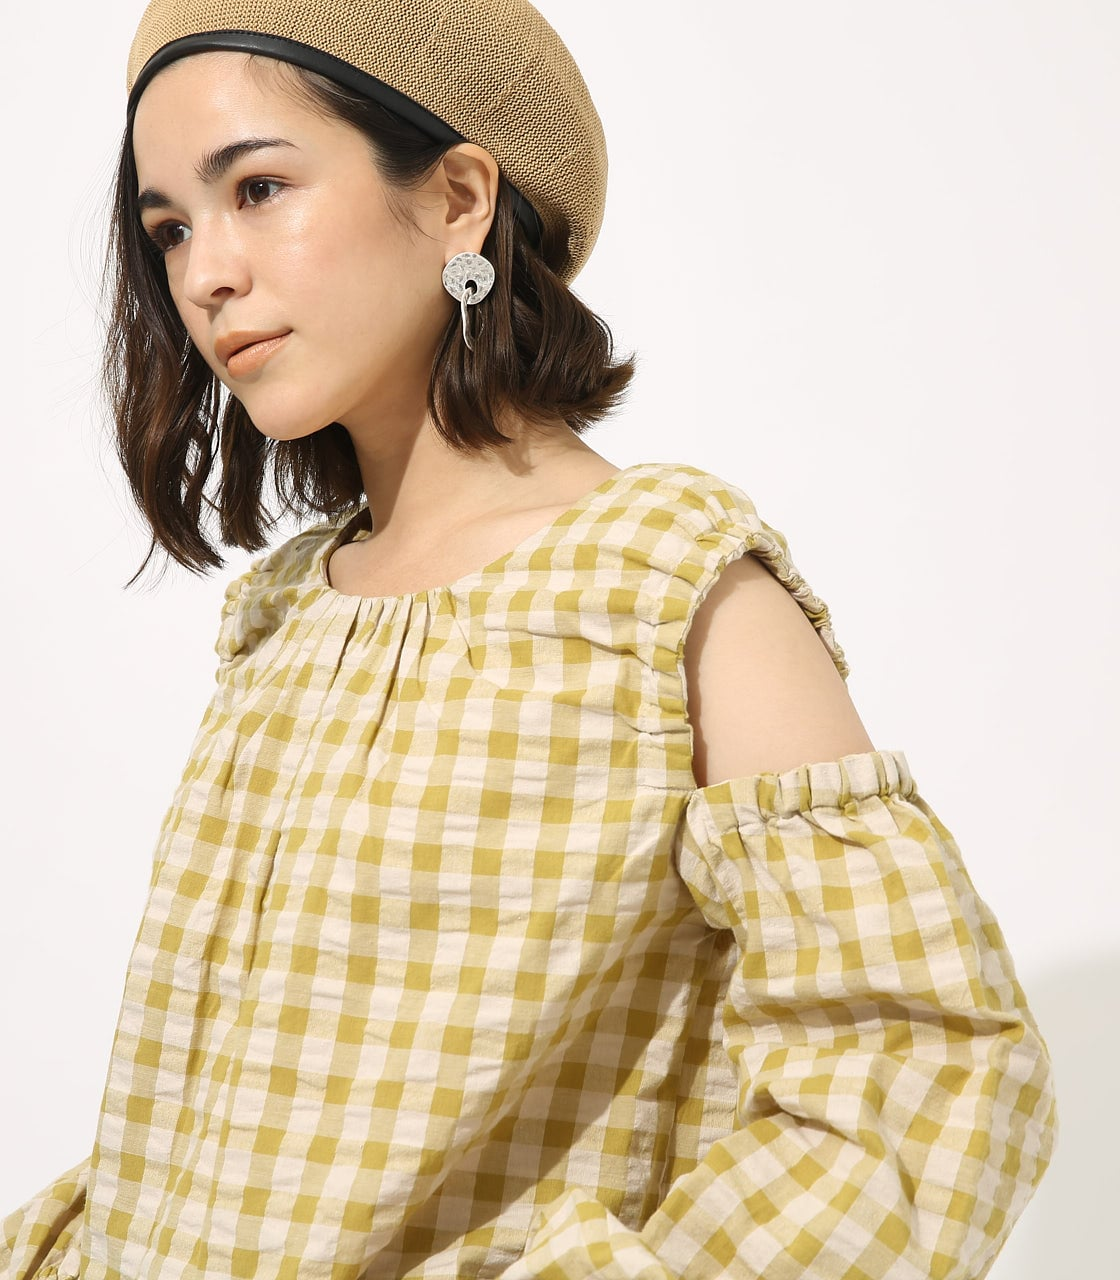 GINGHAM OPEN SHOULDER TOPS 【MOOK49掲載 90053】 詳細画像 柄LIME 2